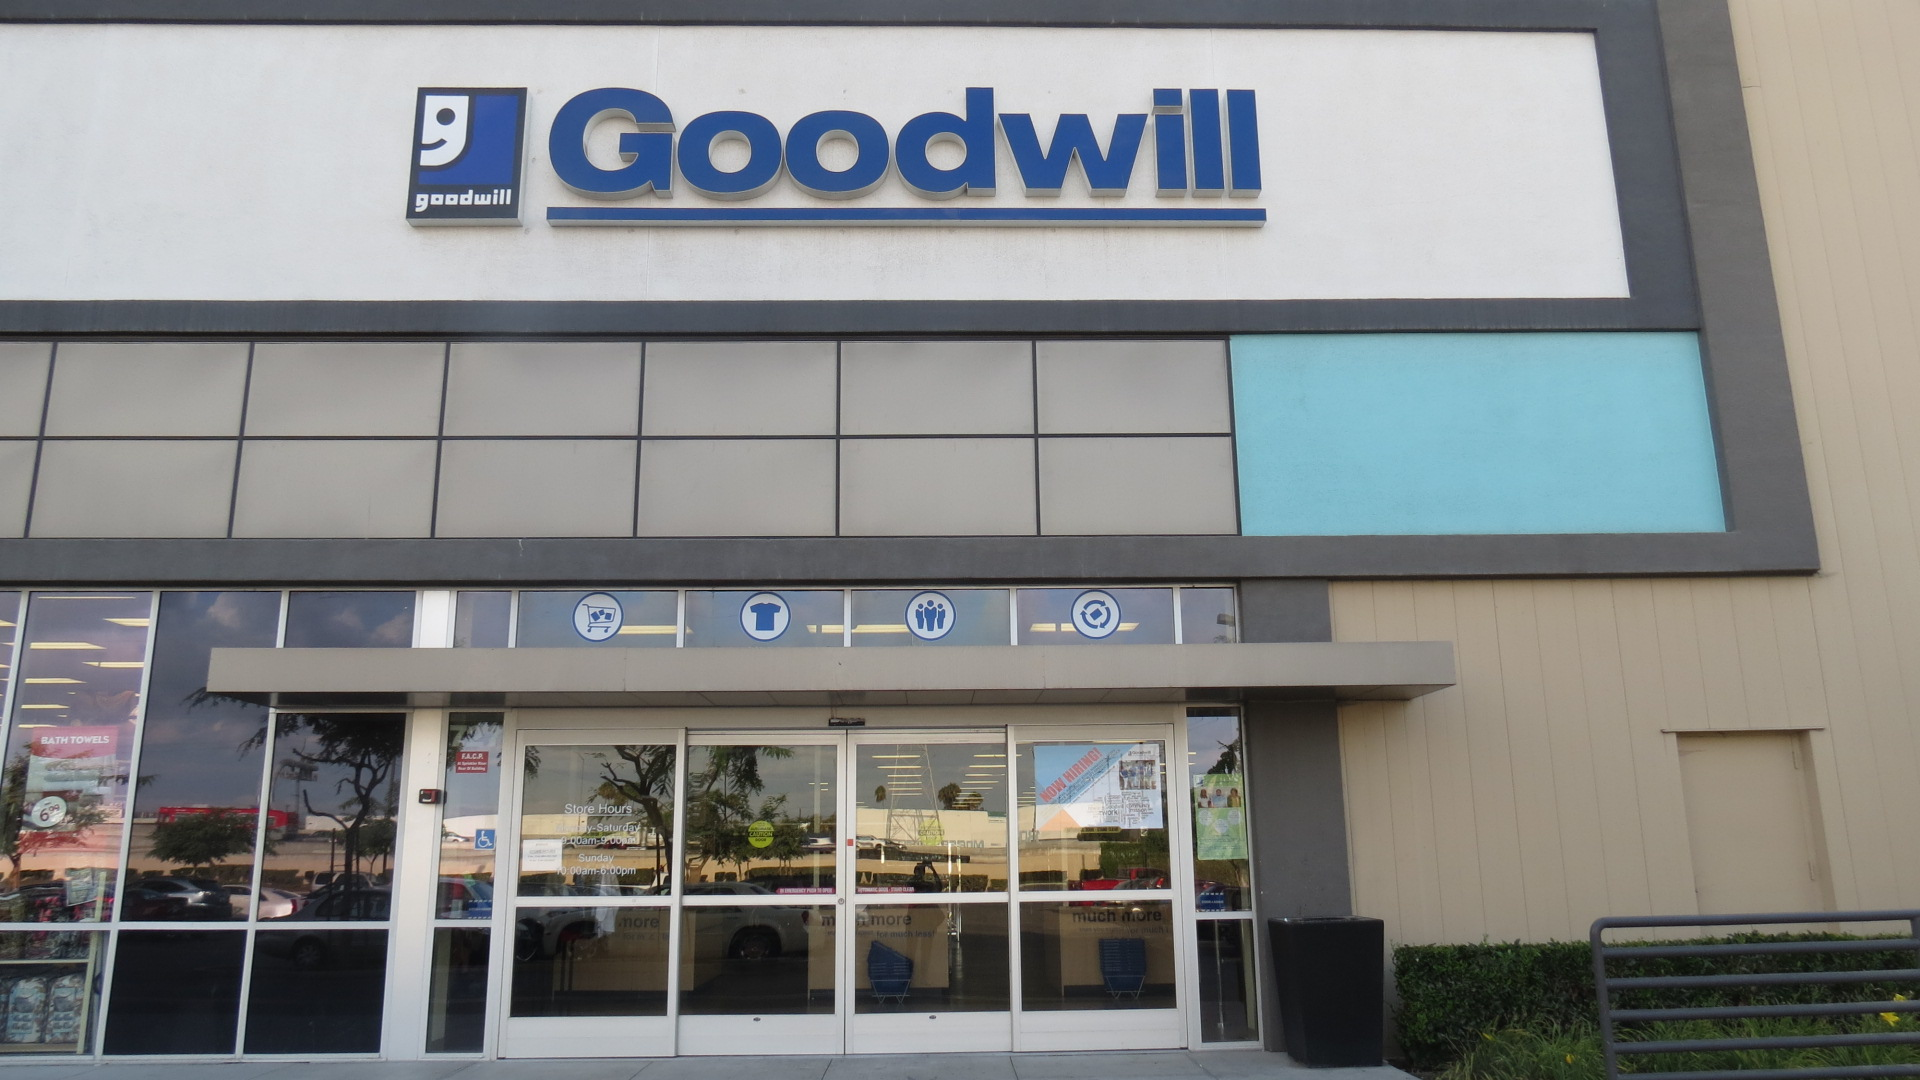 Gardena Goodwill Retail Store & Donation Center